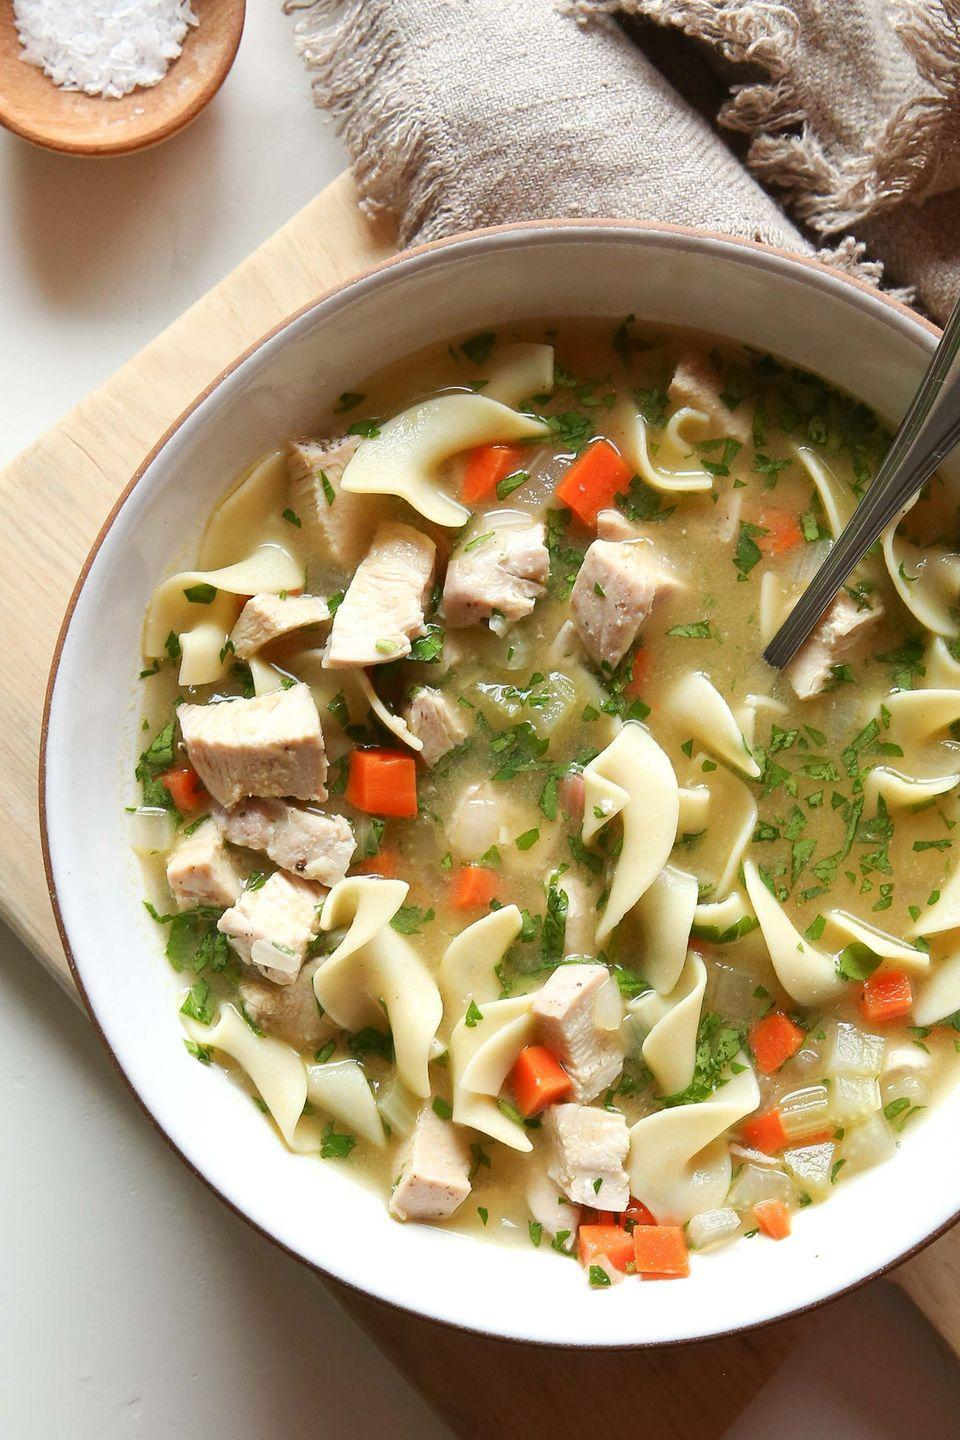 "<p>We're never going back to Campbell's.</p><p>Get the recipe from <a href=""https://www.delish.com/cooking/recipe-ideas/recipes/a51338/homemade-chicken-noodle-soup-recipe/"" rel=""nofollow noopener"" target=""_blank"" data-ylk=""slk:Delish"" class=""link rapid-noclick-resp"">Delish</a>.</p>"